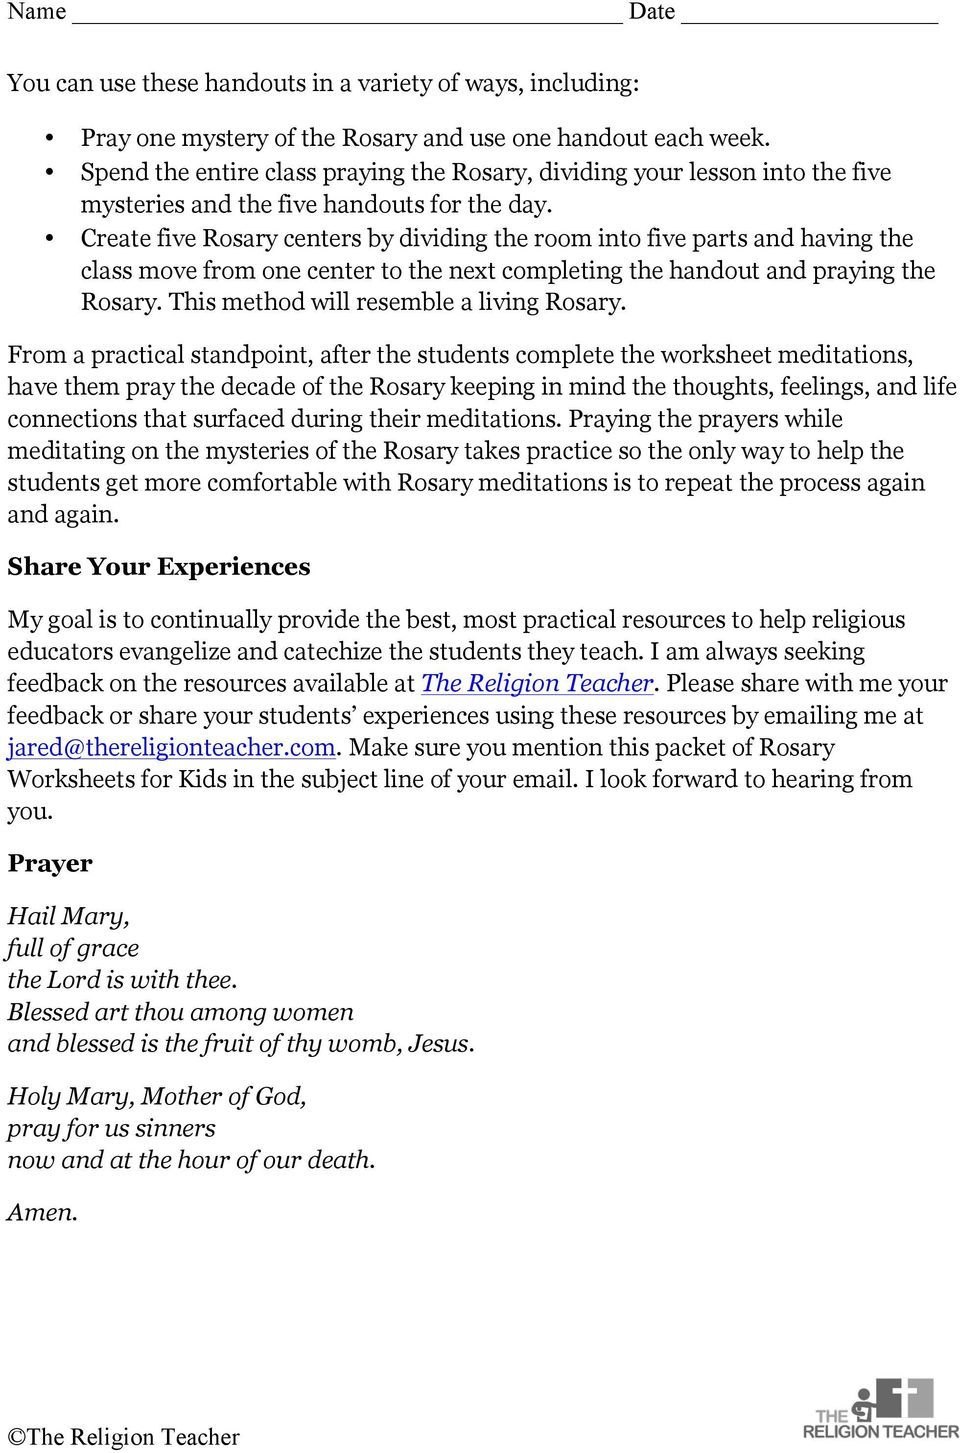 hight resolution of The Religion Teacher s Rosary Worksheets for Kids - PDF Free Download